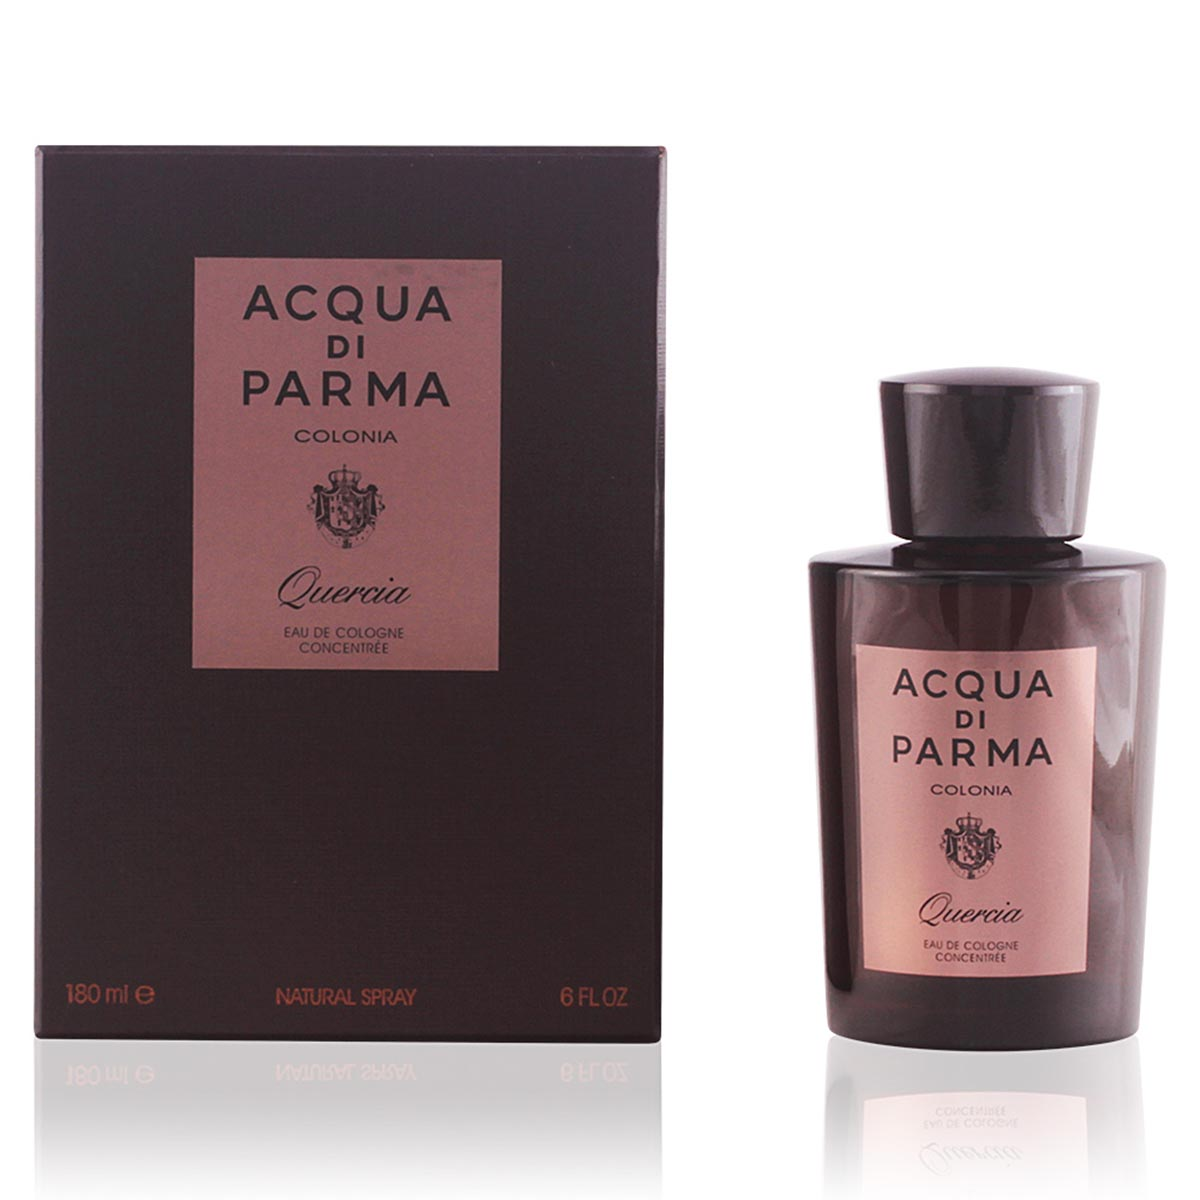 Acqua di parma quercia eau de cologne concentree 180ml vaporizador